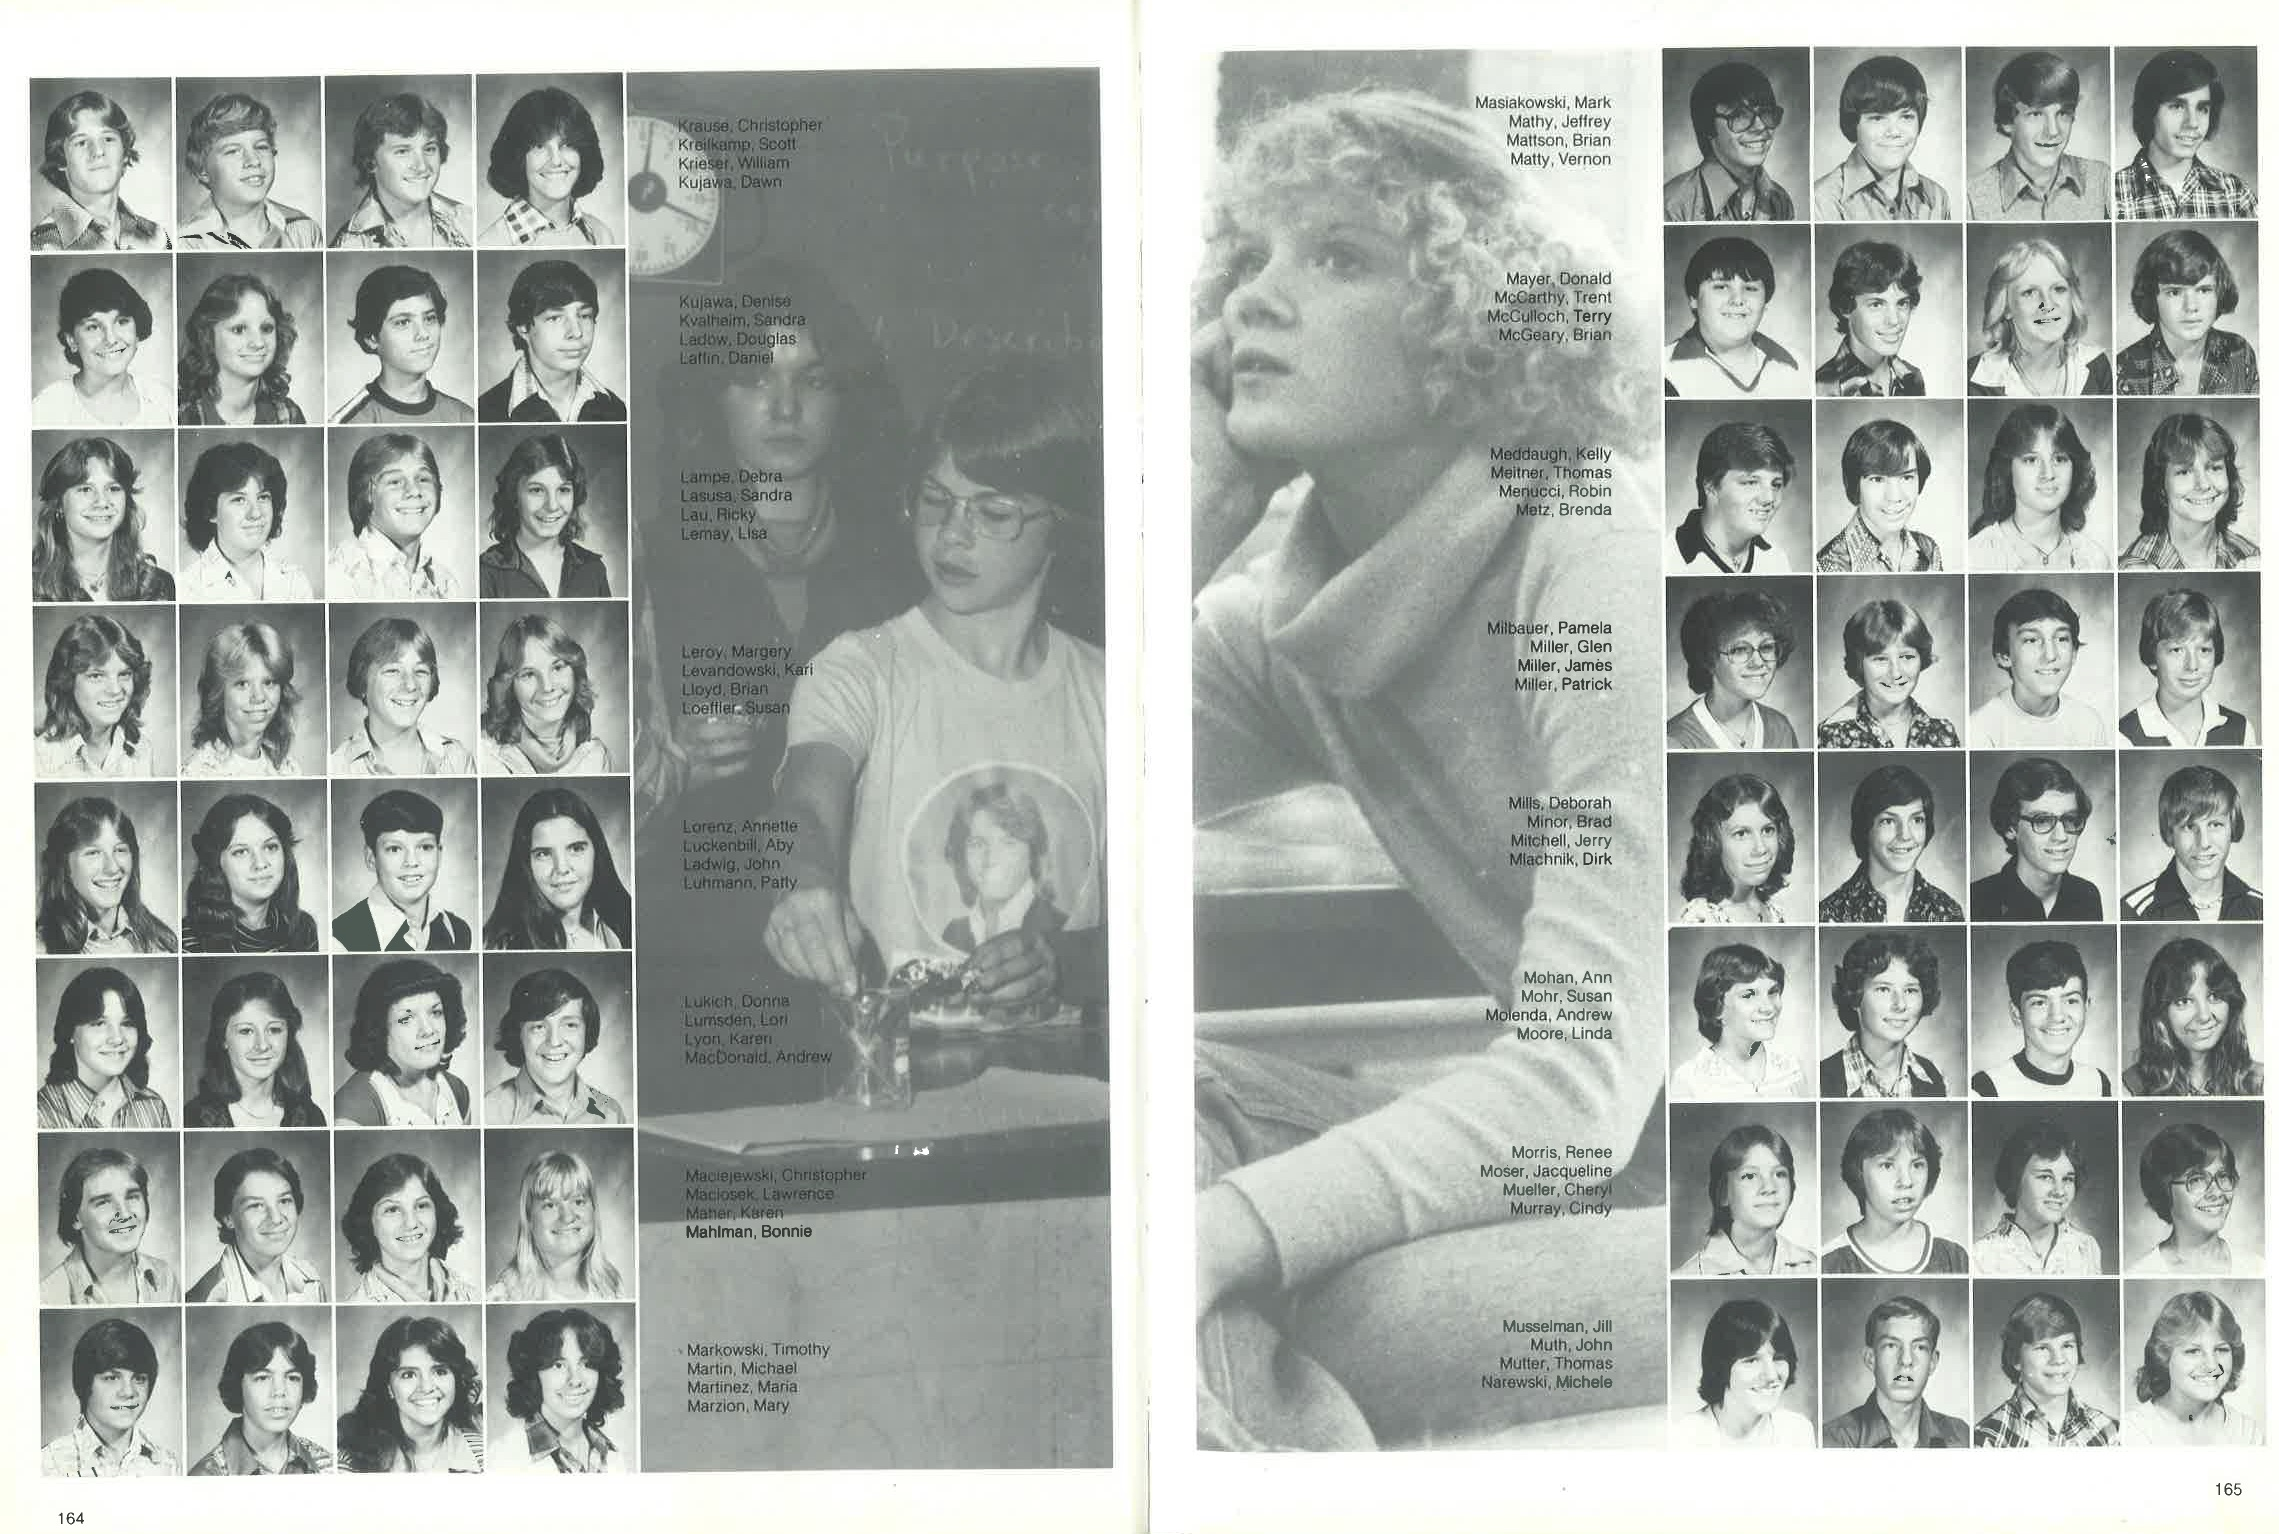 1979_Yearbook_156.jpg